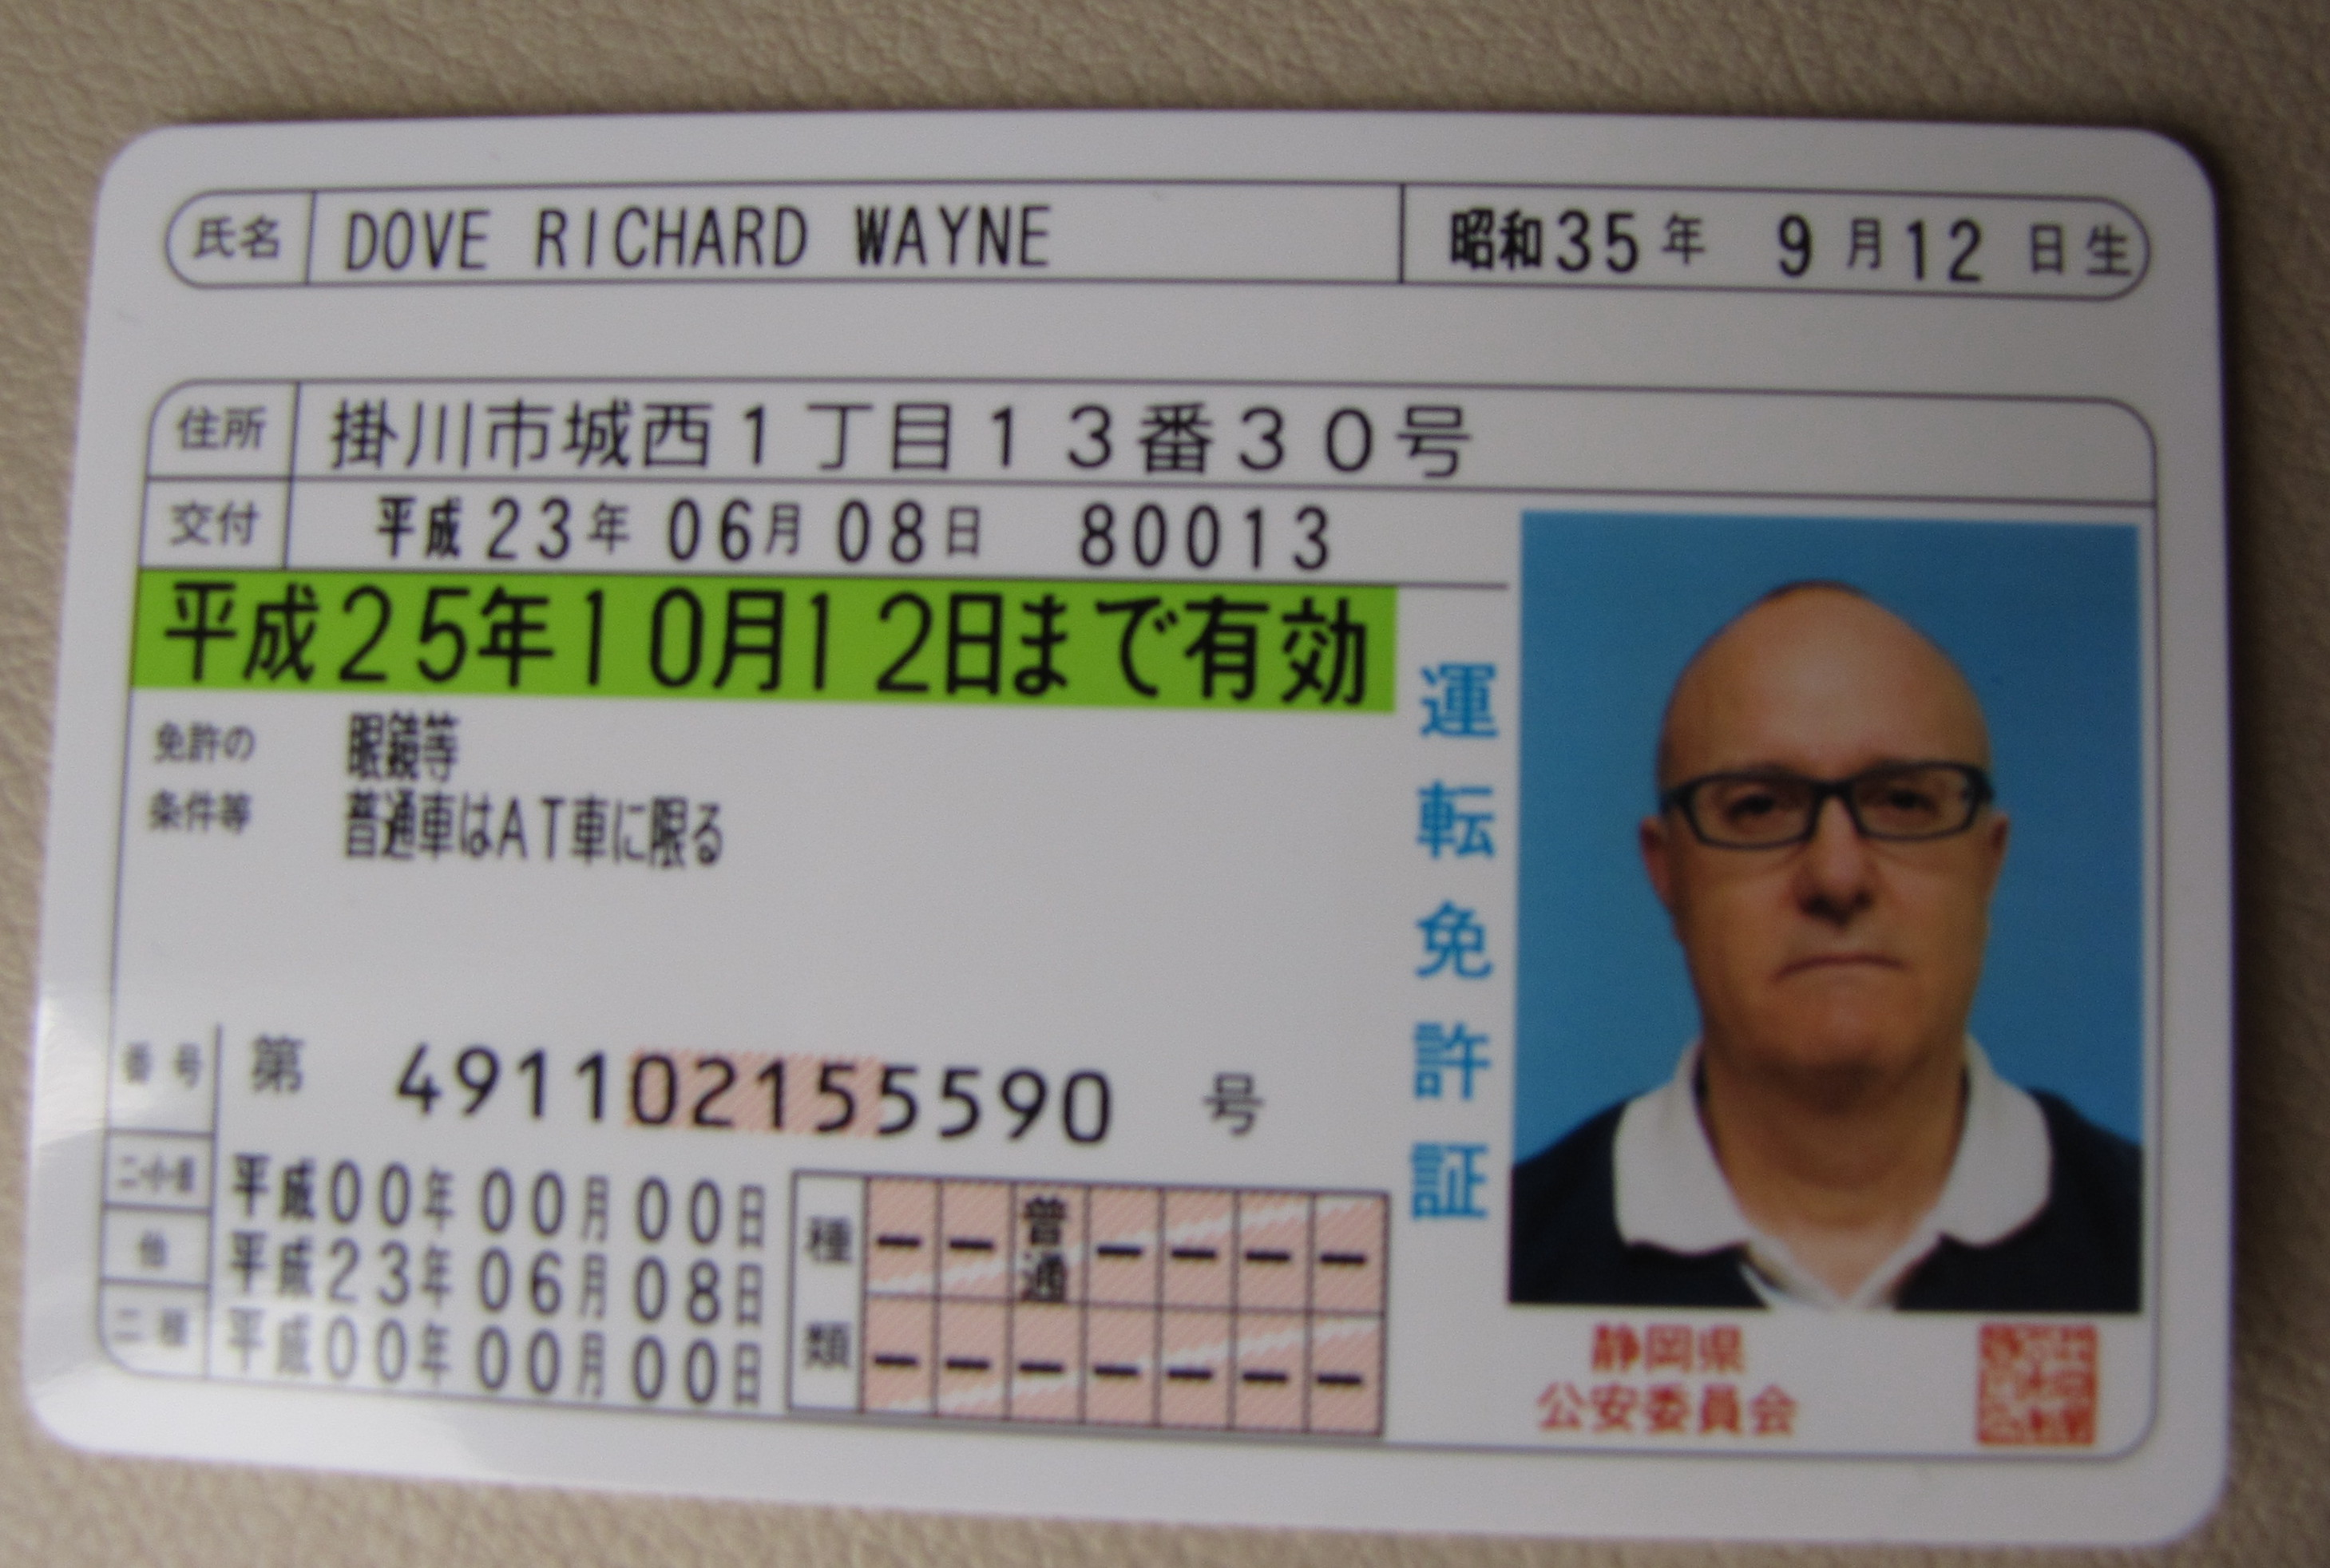 Japanese Drivers License | Doves in Kakegawa